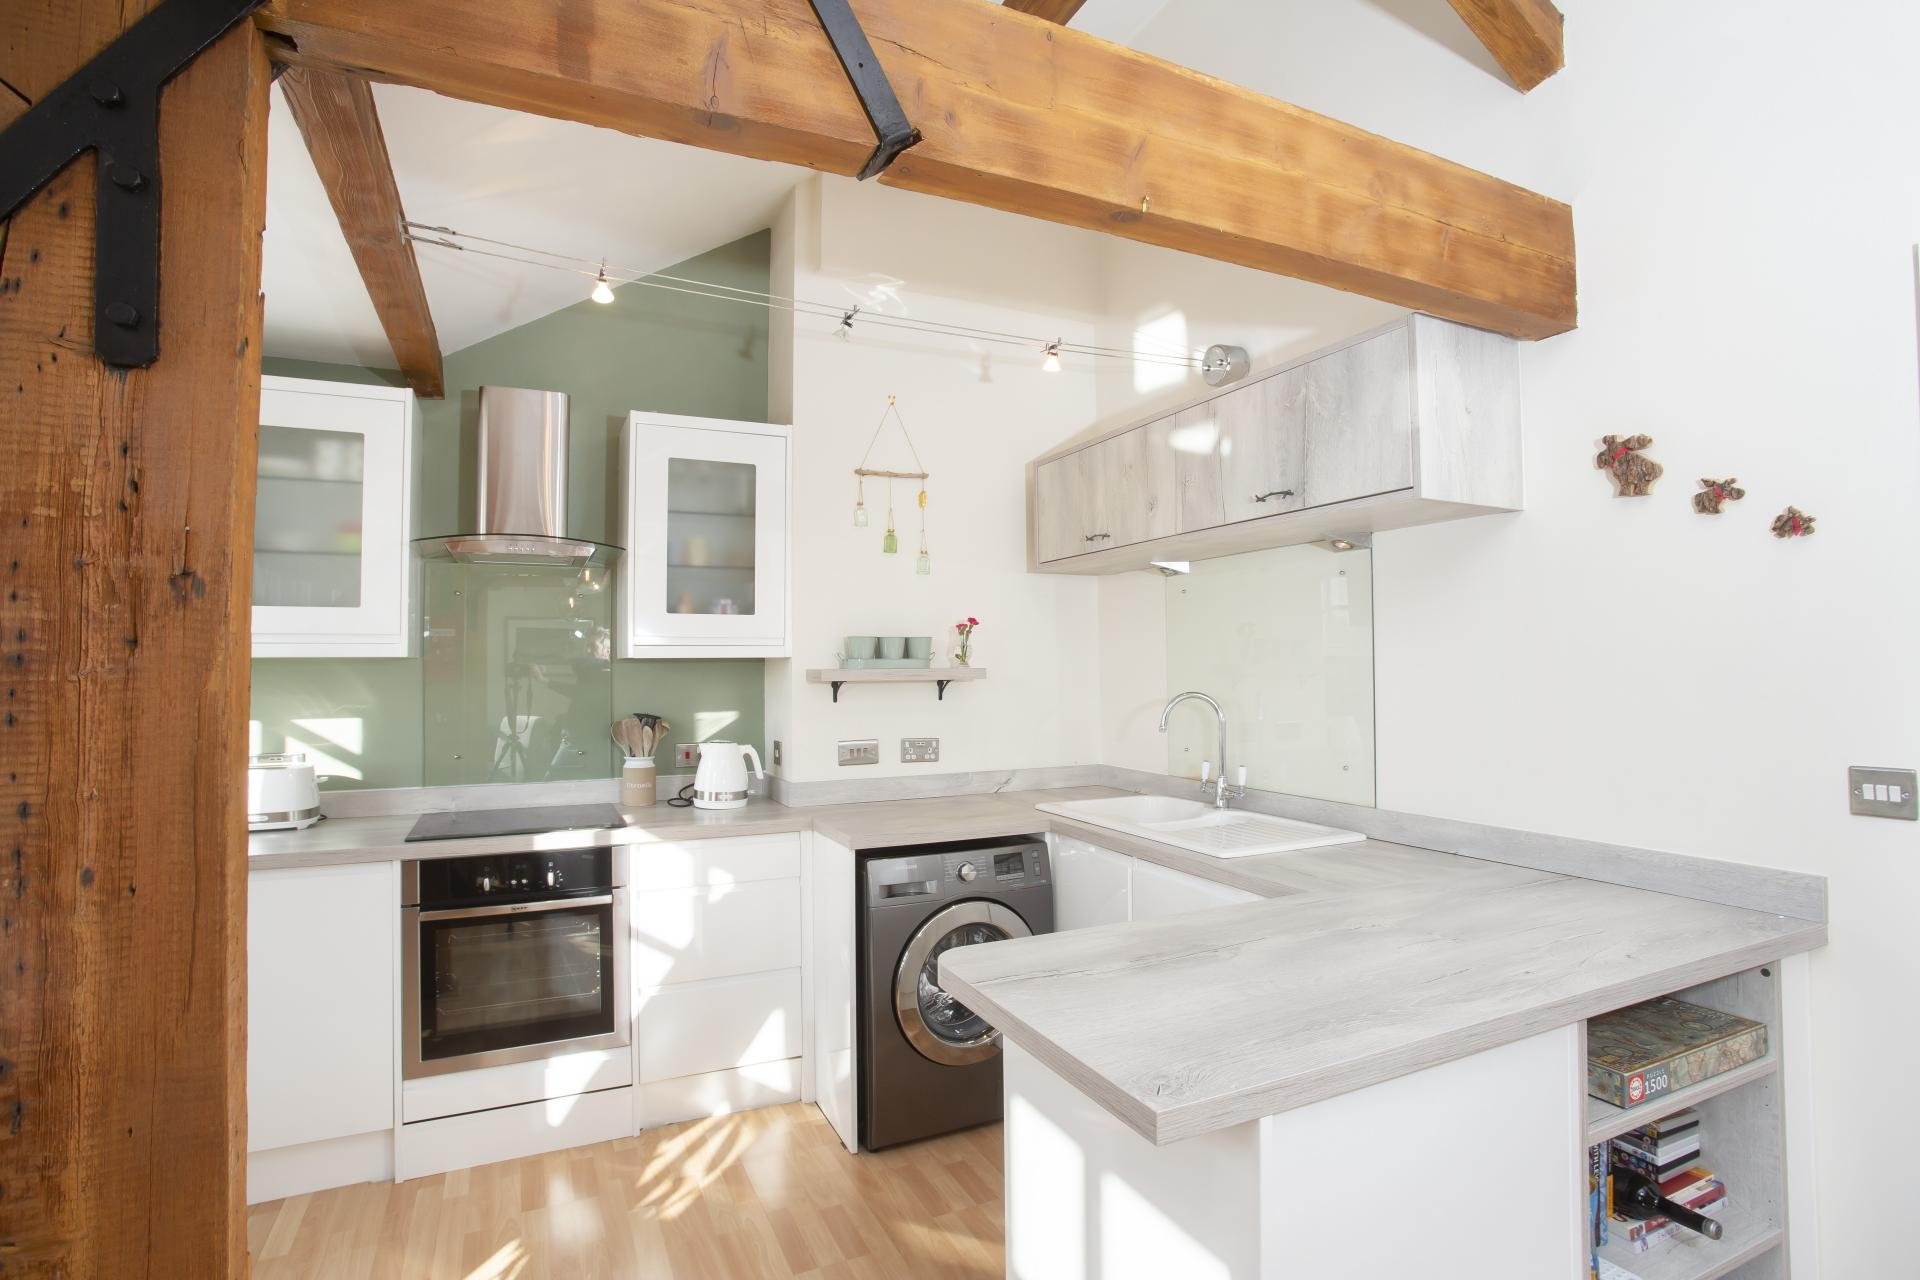 Kitchen at The Nutshell Apartment, Heworth, York - Citybase Apartments